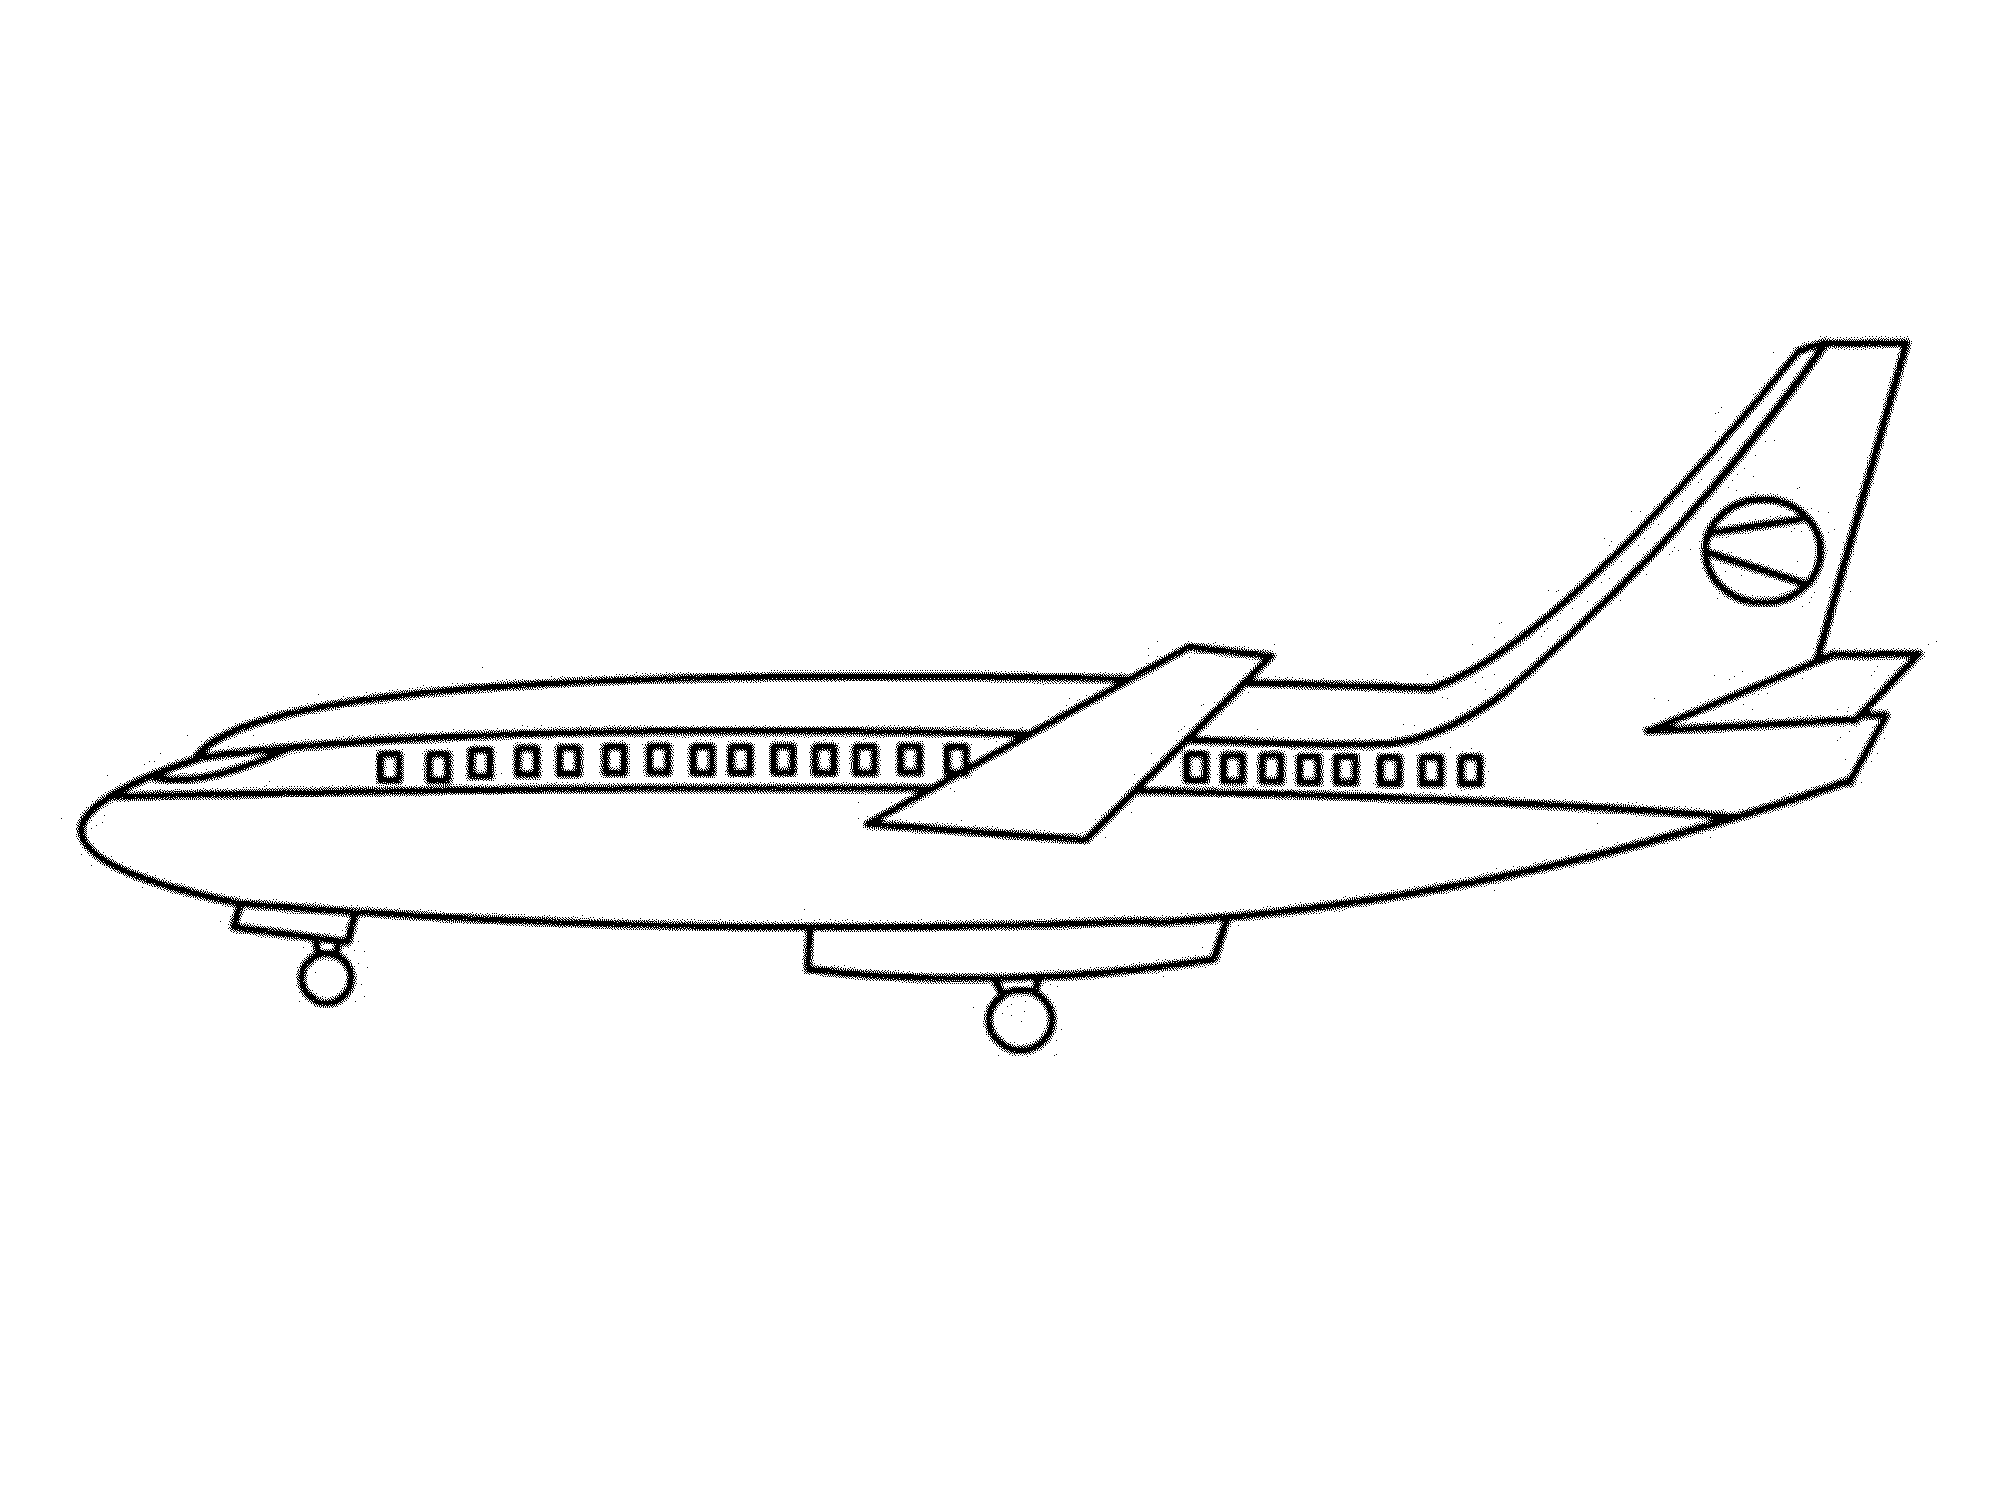 jet colouring pages fighter aircraft coloring pages to download and print for free pages jet colouring